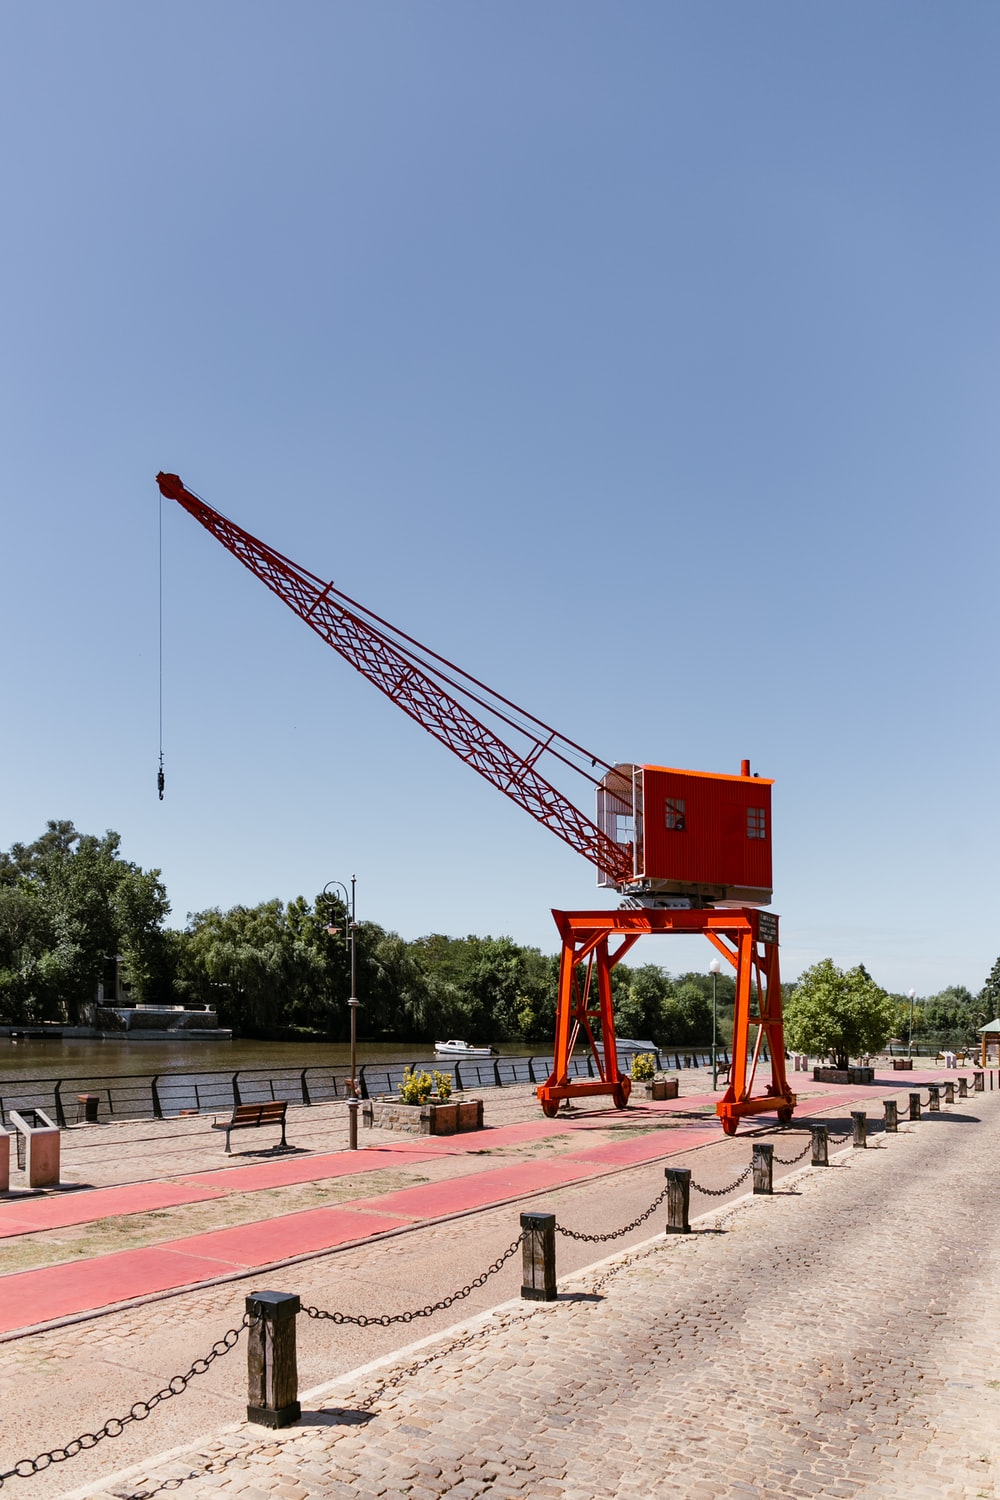 red crane on brown concrete floor during daytime